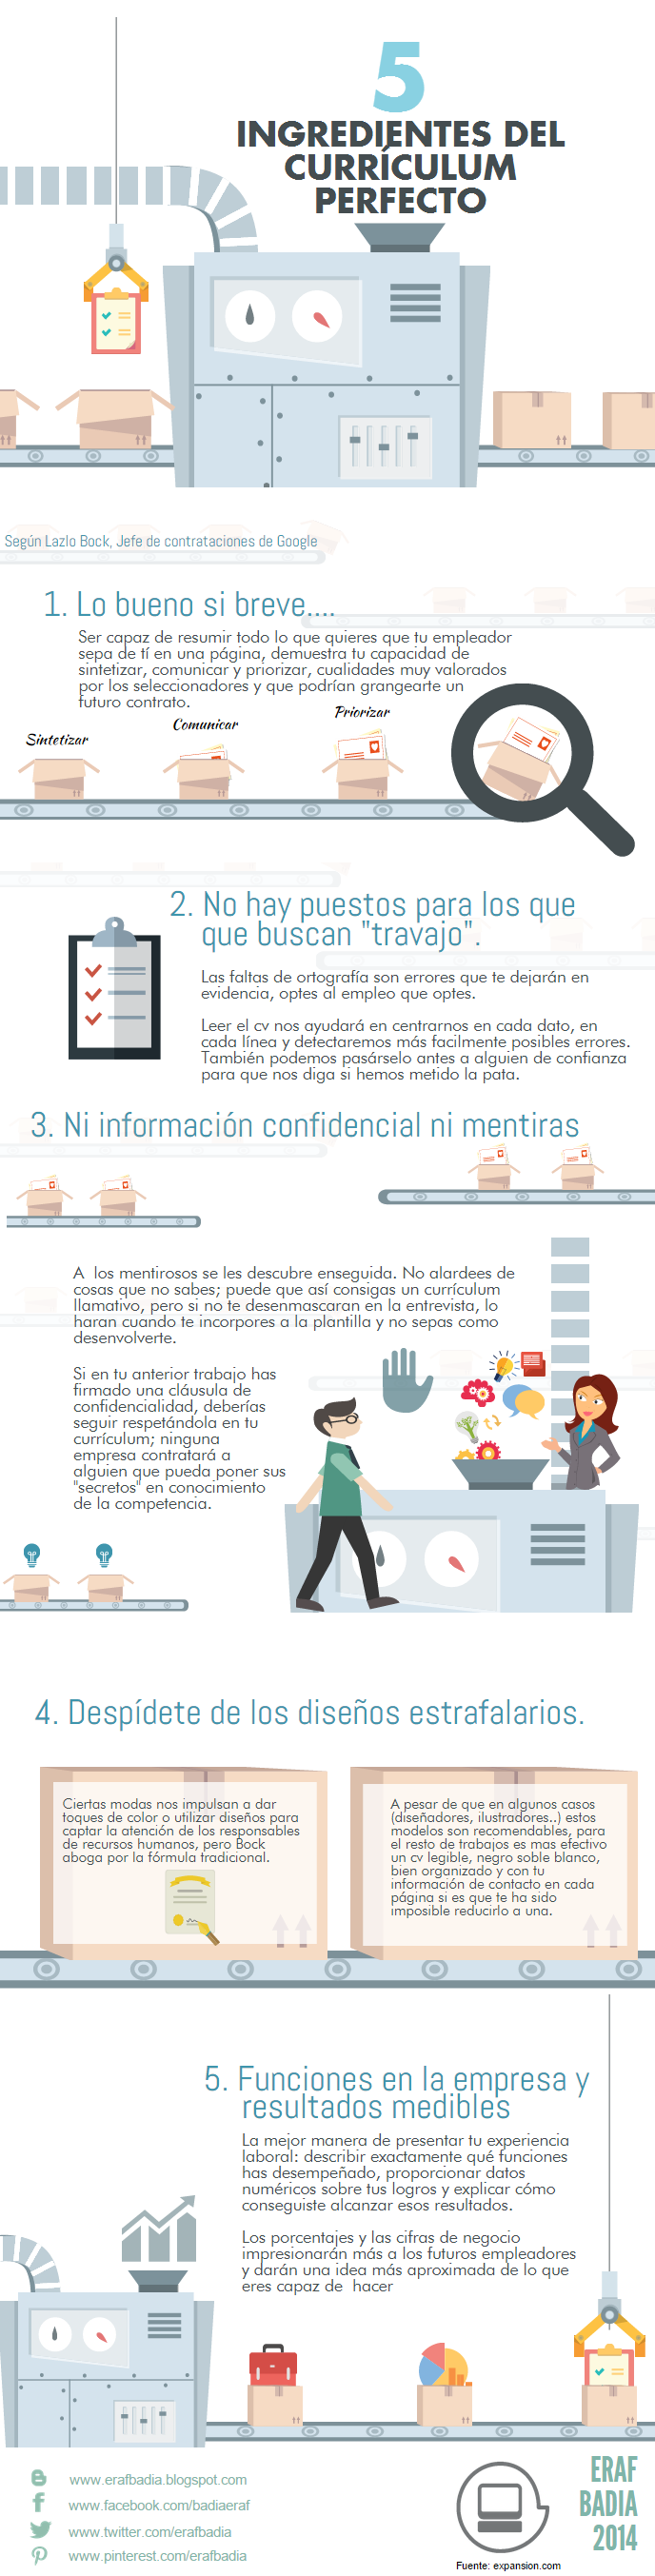 1000+ images about vida después de la universidad on Pinterest